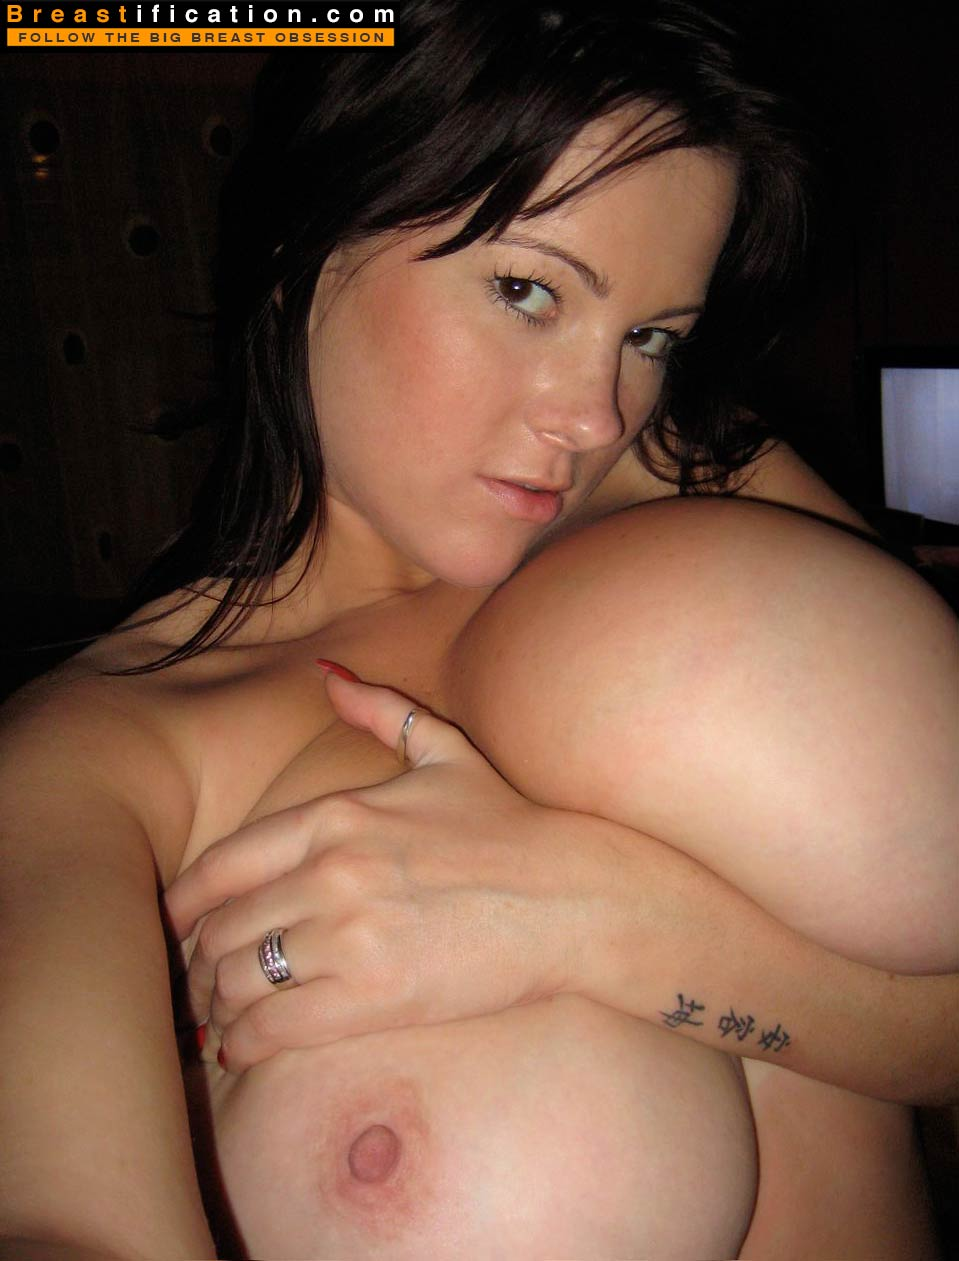 Boob fondling and please